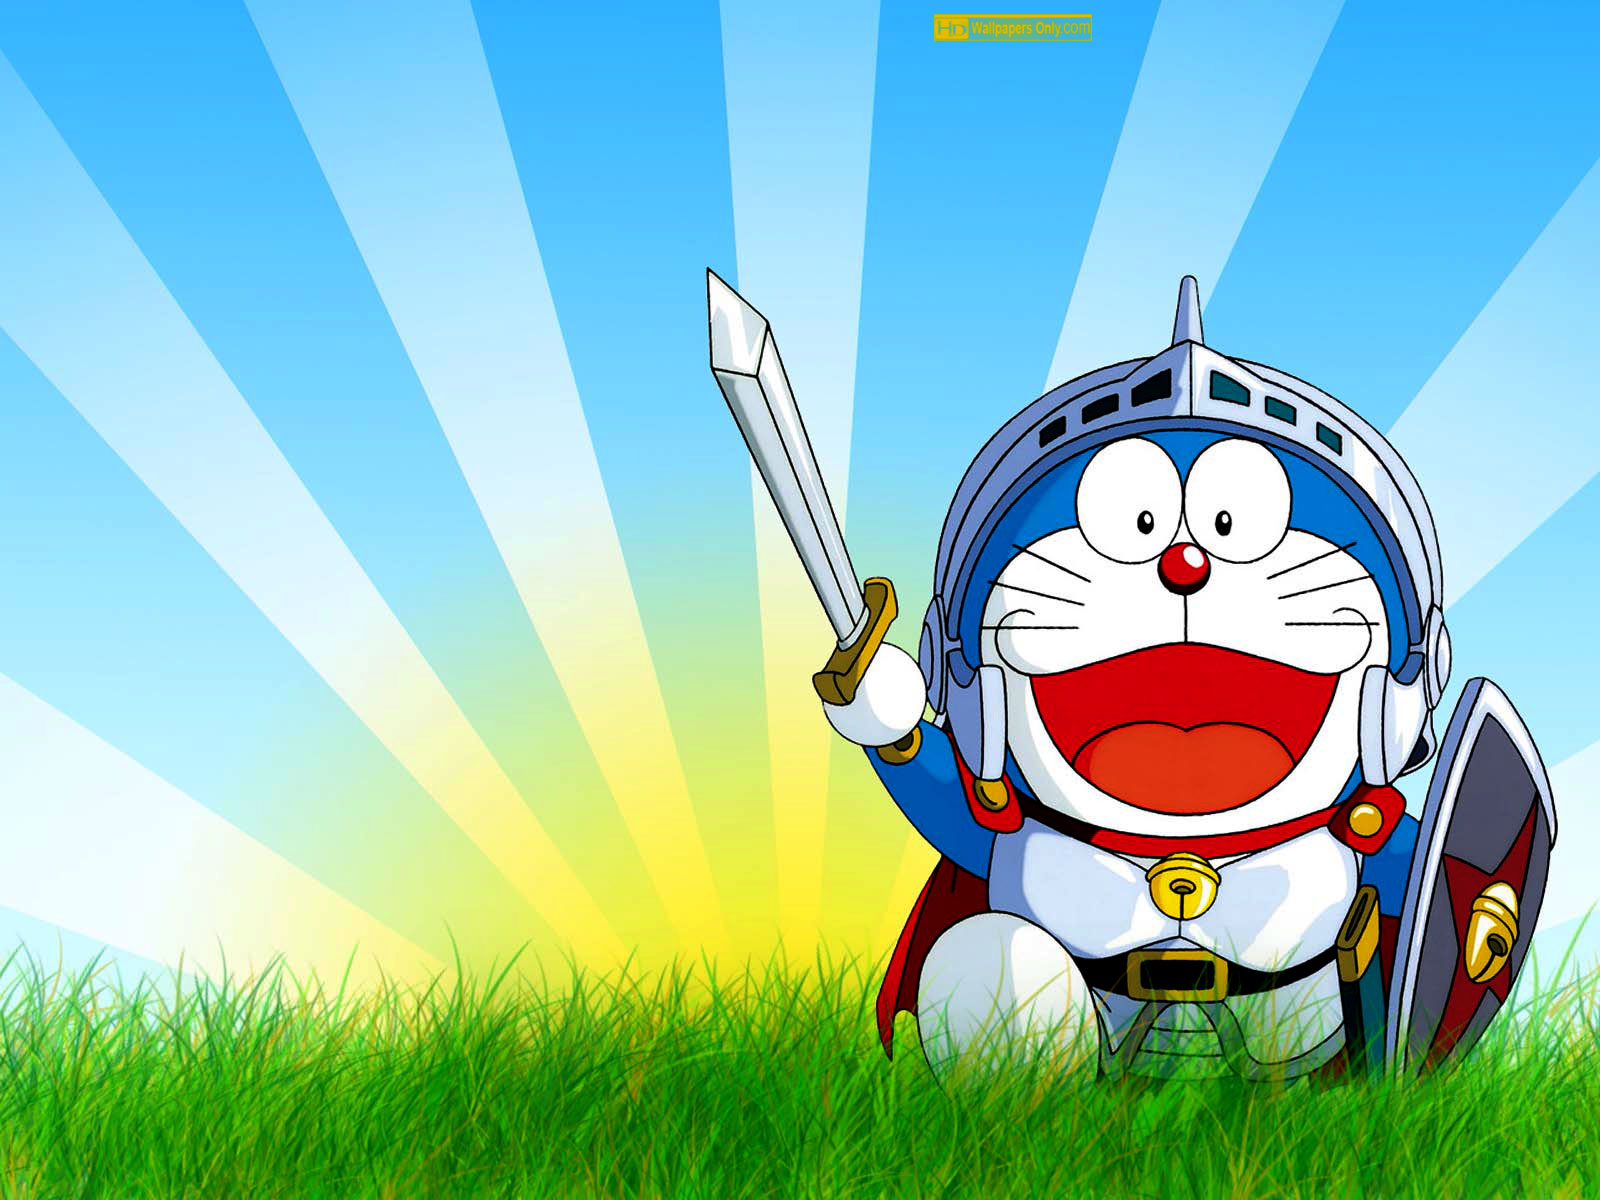 Gambar Wallpaper Animasi Doraemon  Kampung Wallpaper